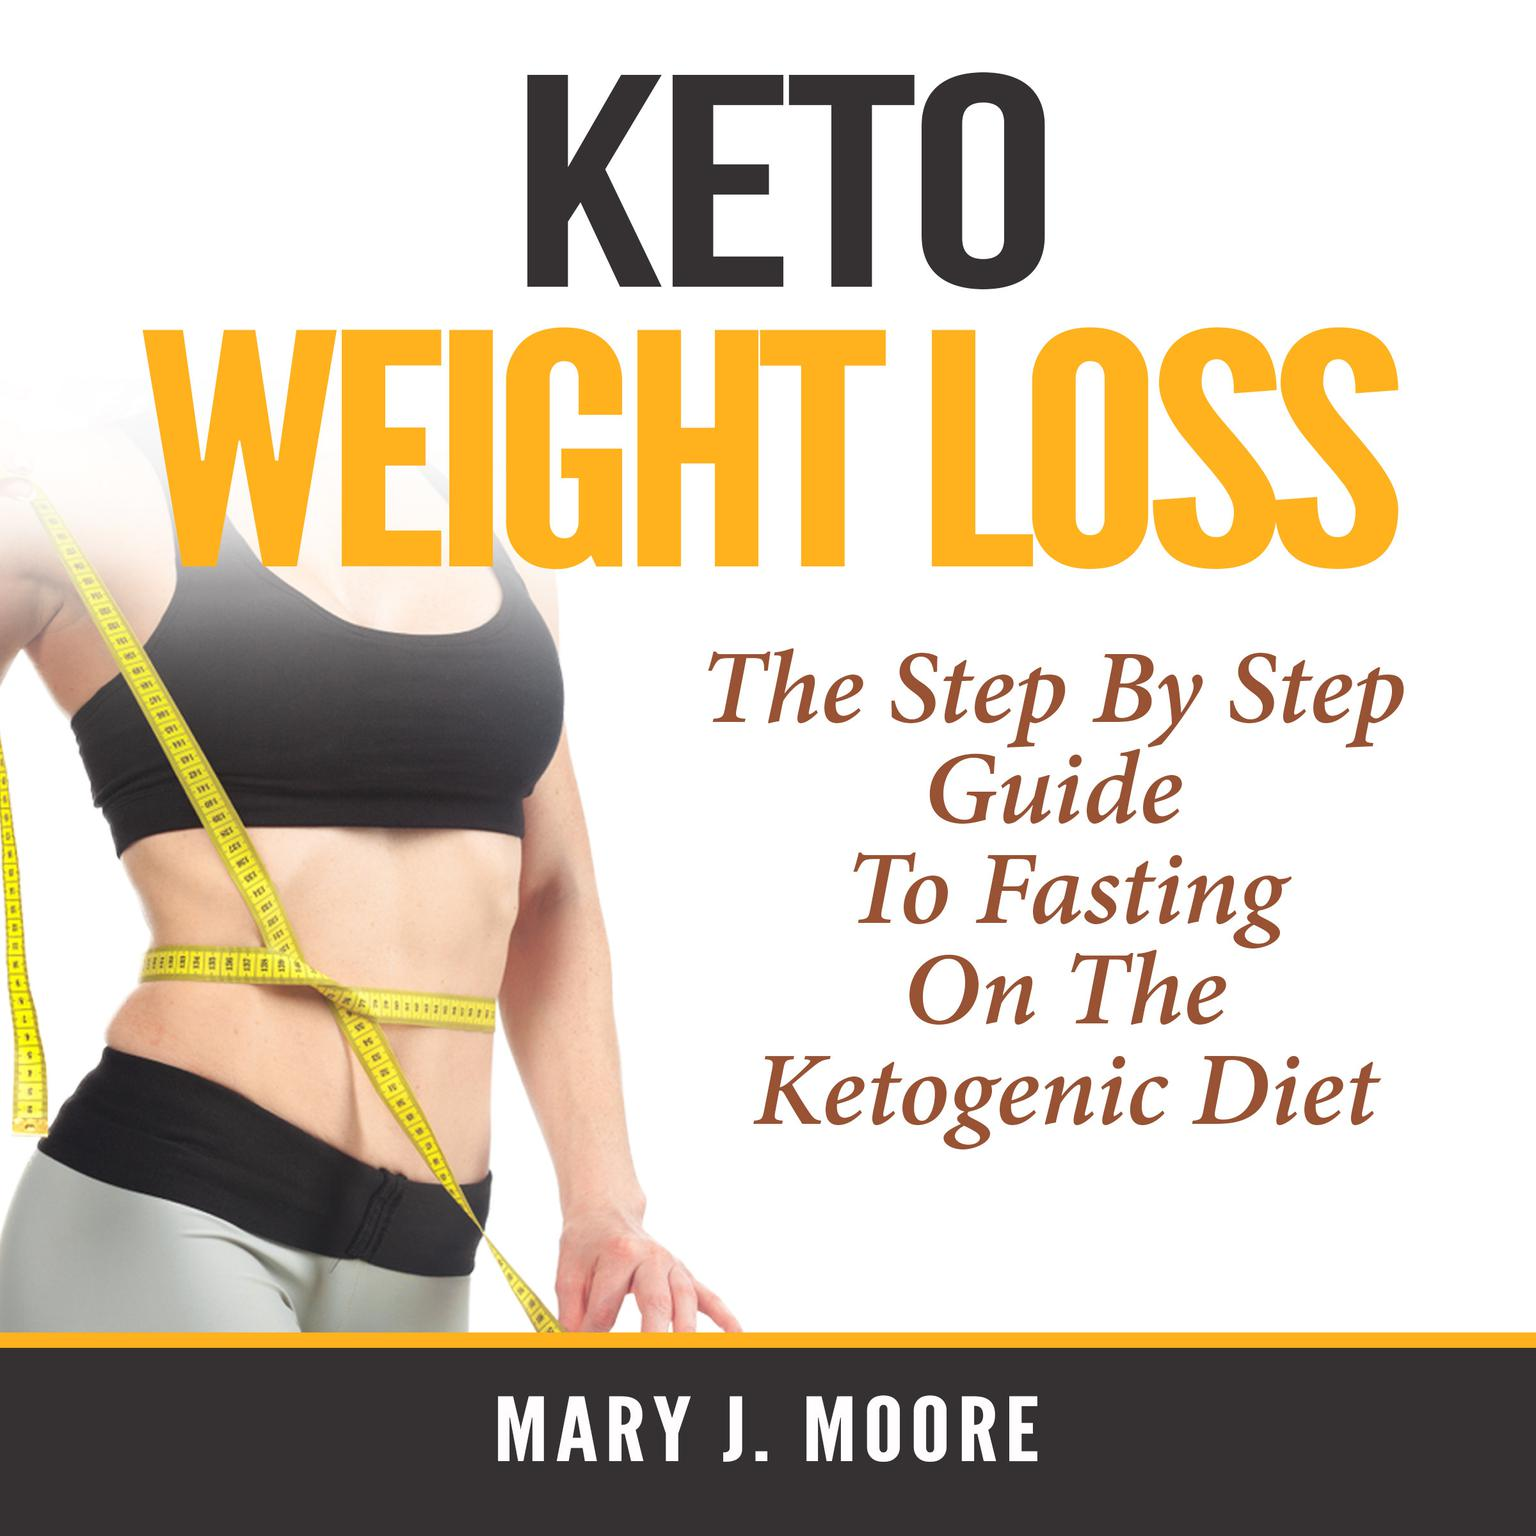 Keto Weight Loss: The Step By Step Guide To Fasting On The Ketogenic Diet Audiobook, by Mary J. Moore